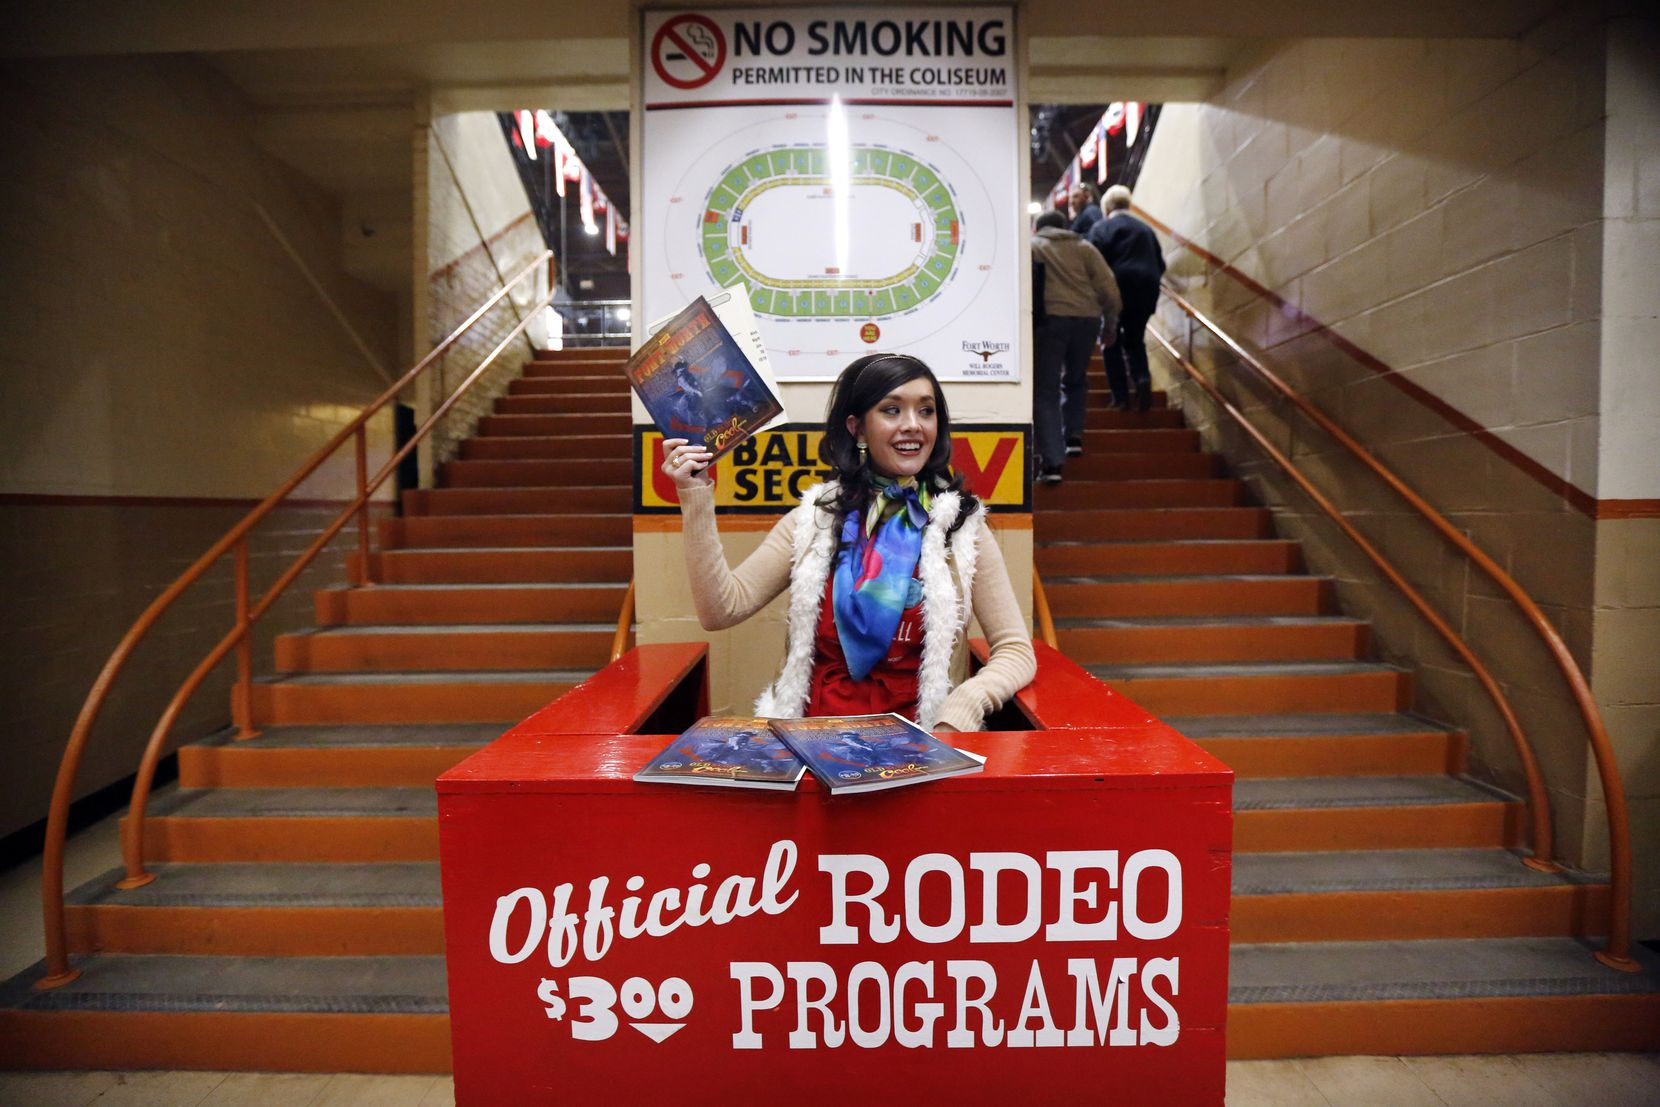 DaNae Lowe and fellow Junior League of Fort Worth members hawk rodeo programs from their red perches lining the concourse of Will Rogers Memorial Coliseum.